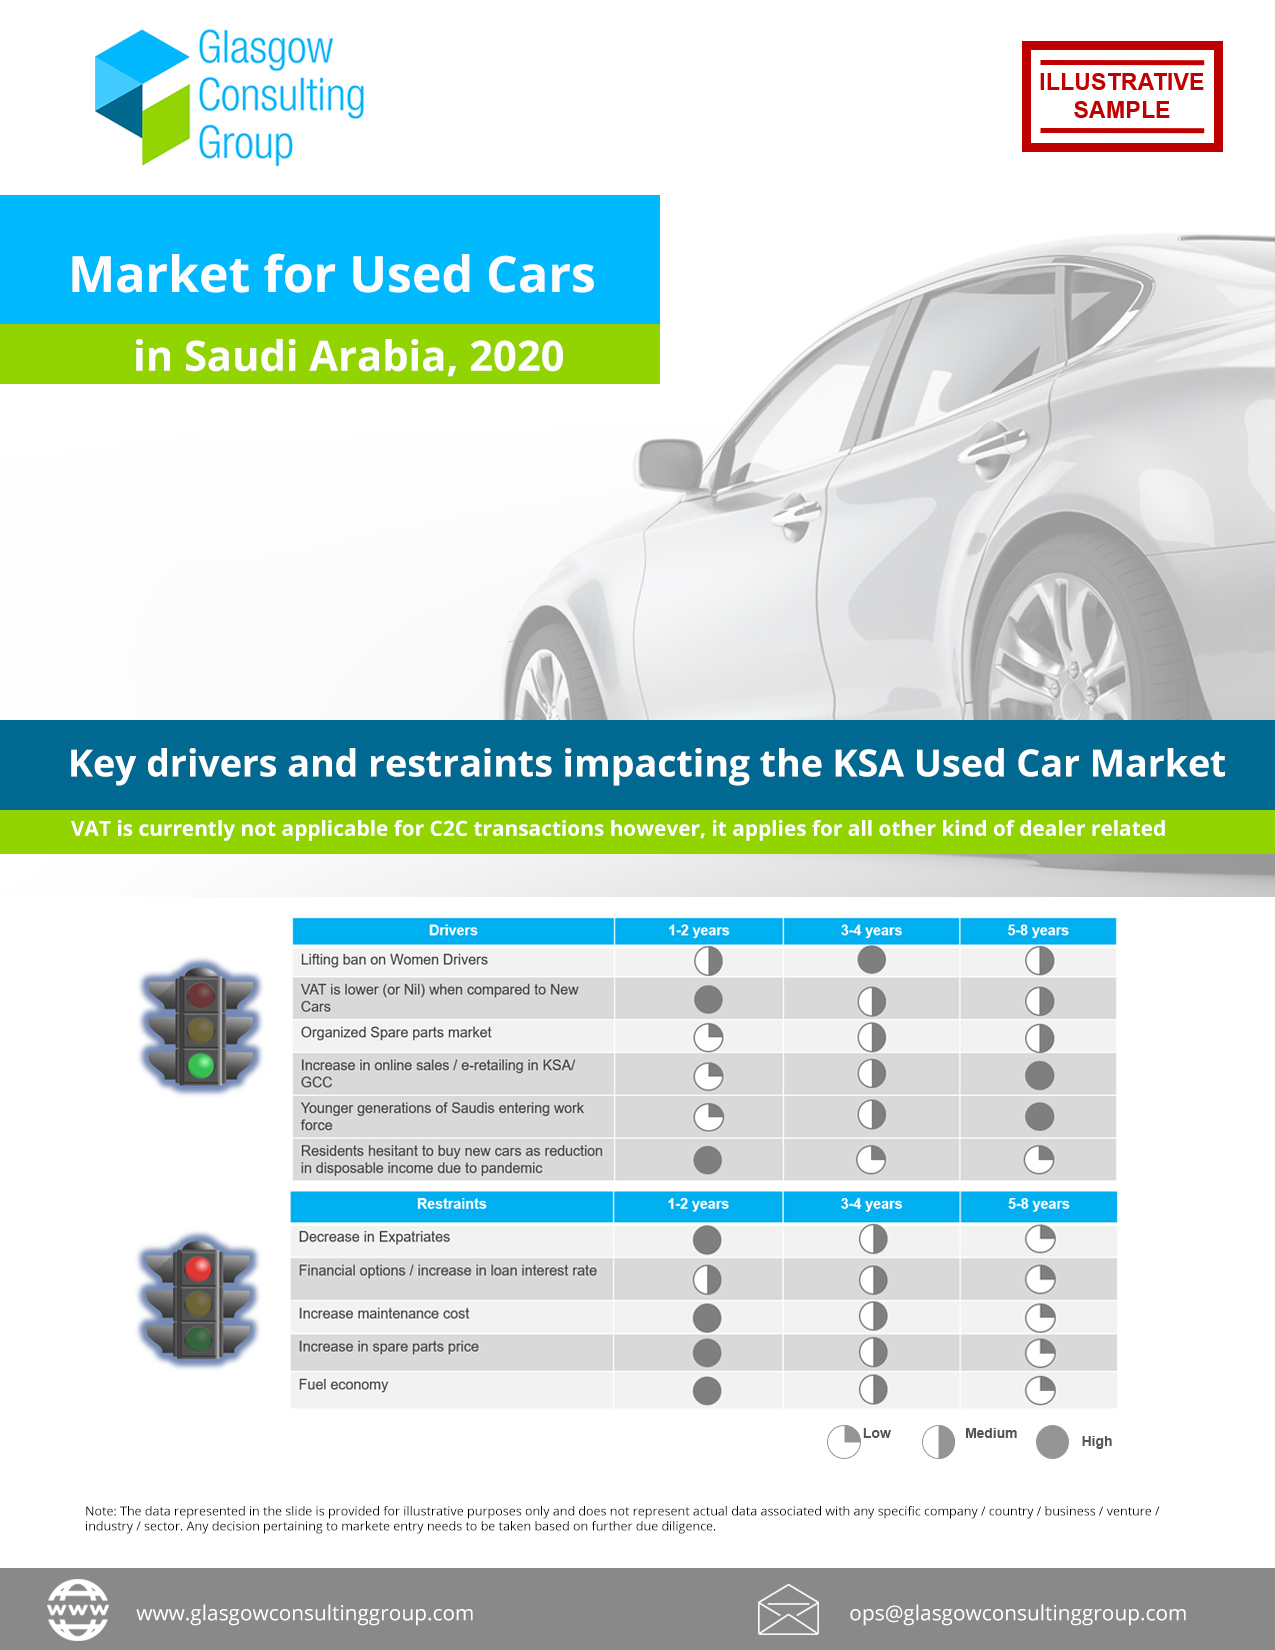 Market for Used Cars in Saudi Arabia, 2020